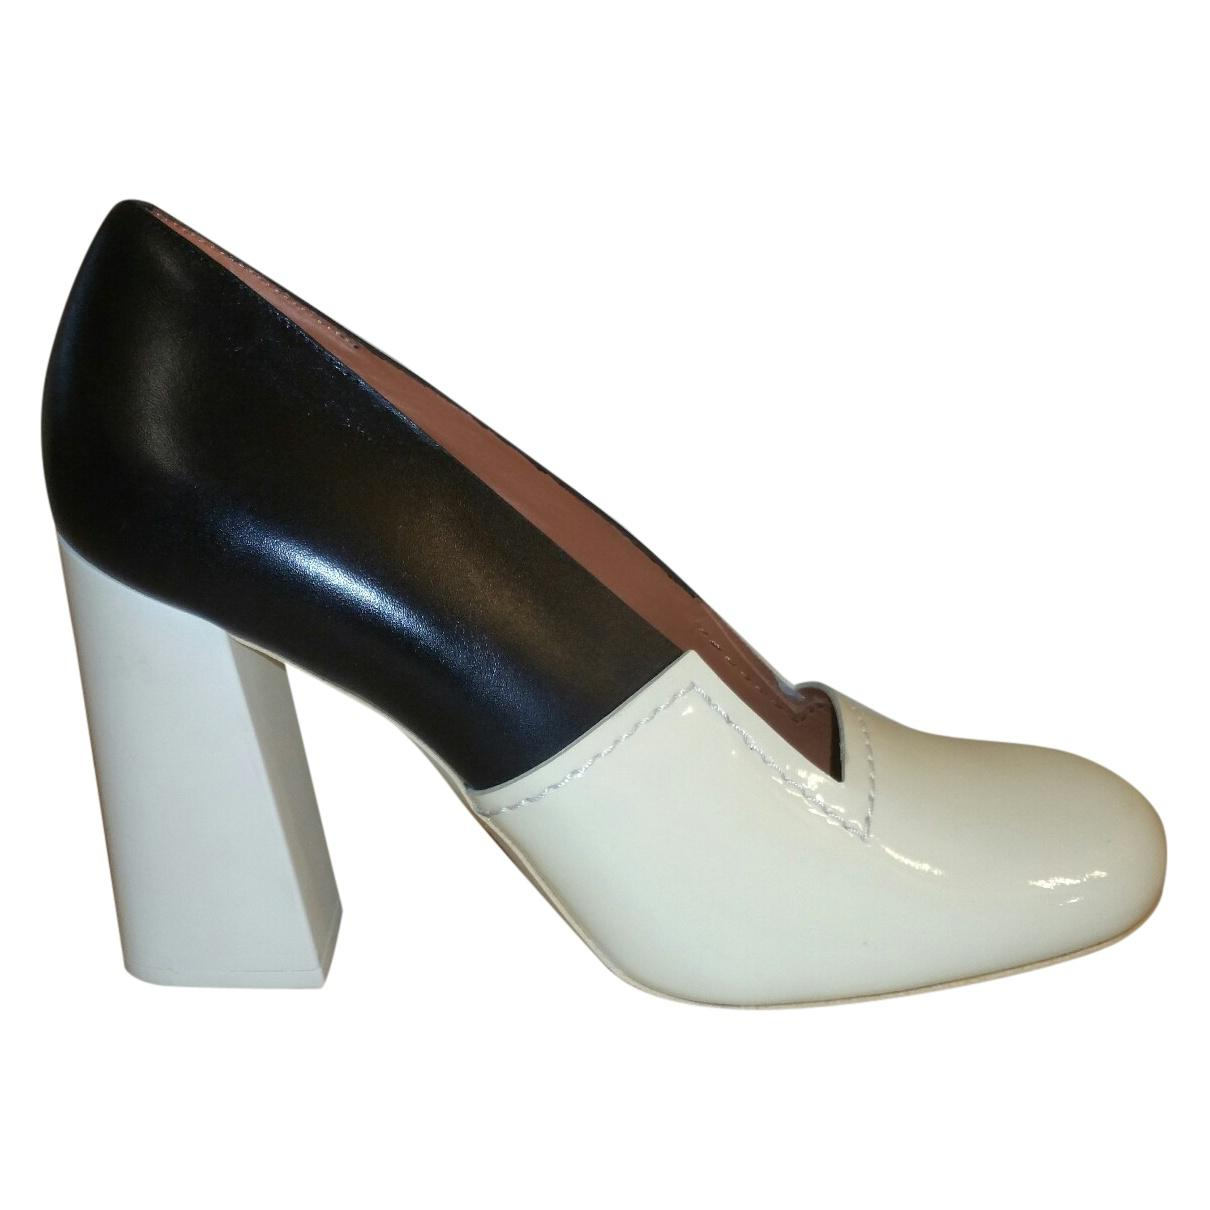 Pre-owned - Patent leather high heel Celine W2cbo6KSn5